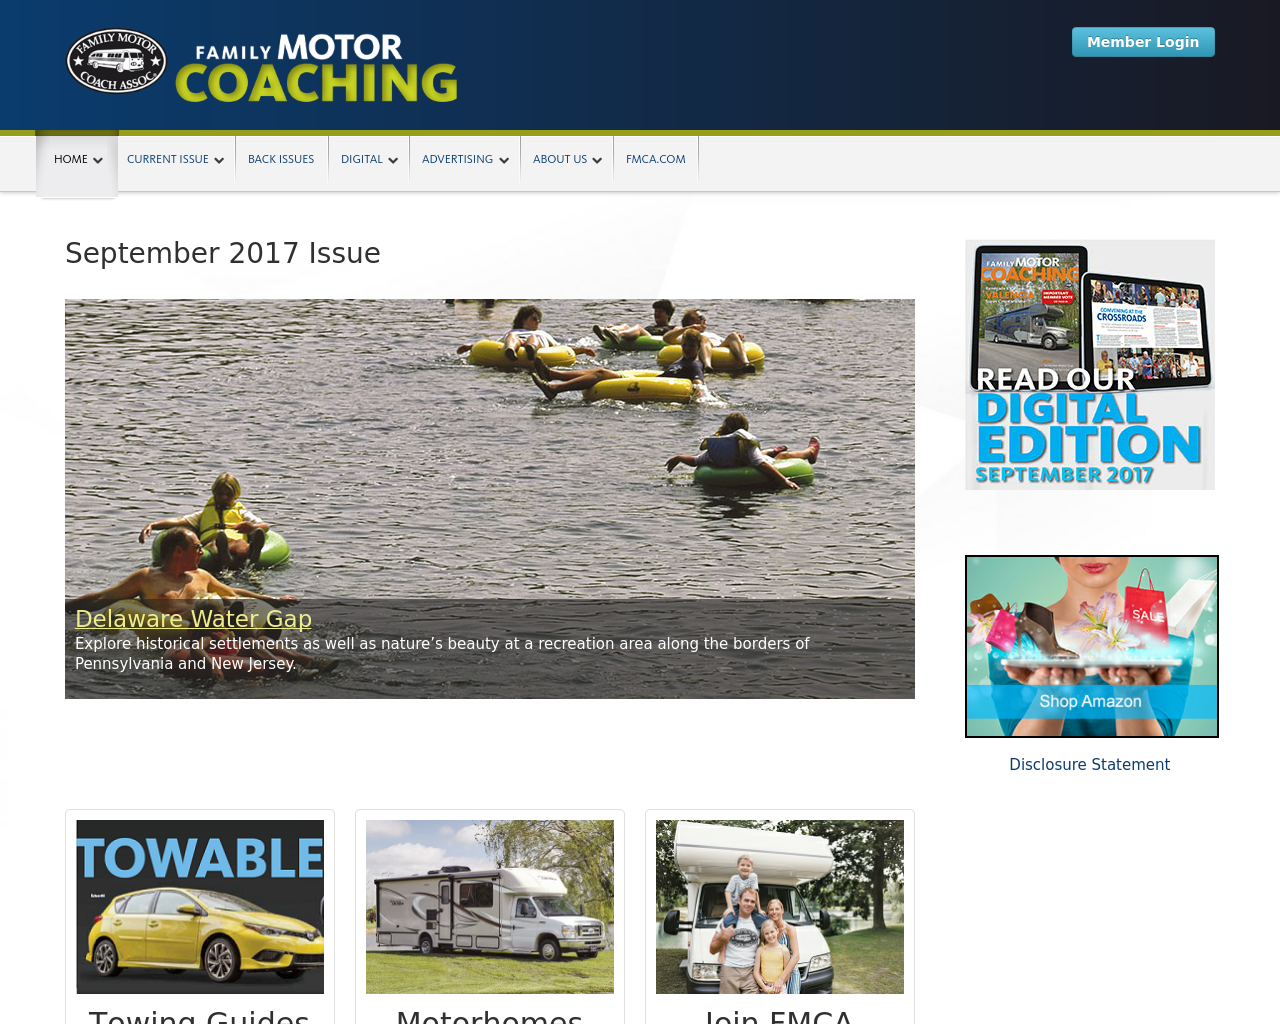 Family-Motor-Coach-Assoc-Advertising-Reviews-Pricing